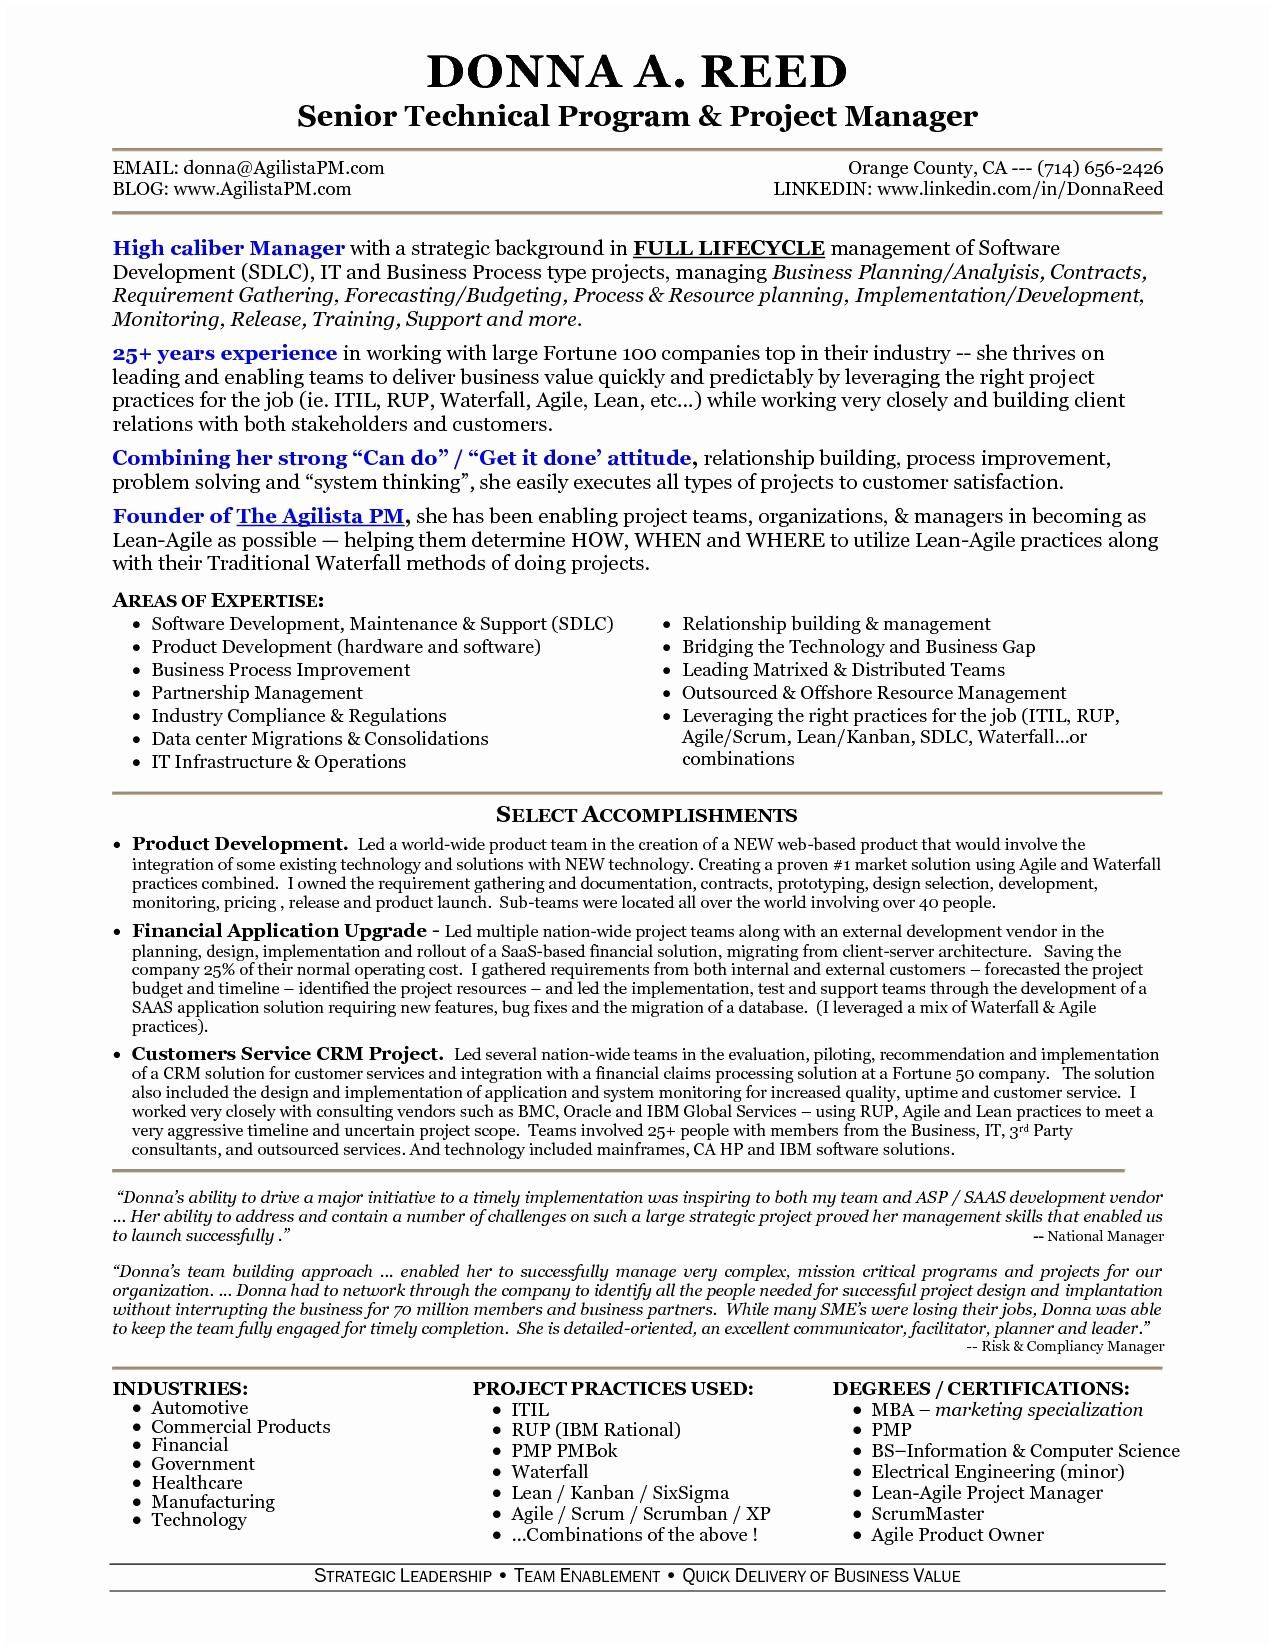 Program Manager Resume Template - Program Manager Resume Sample